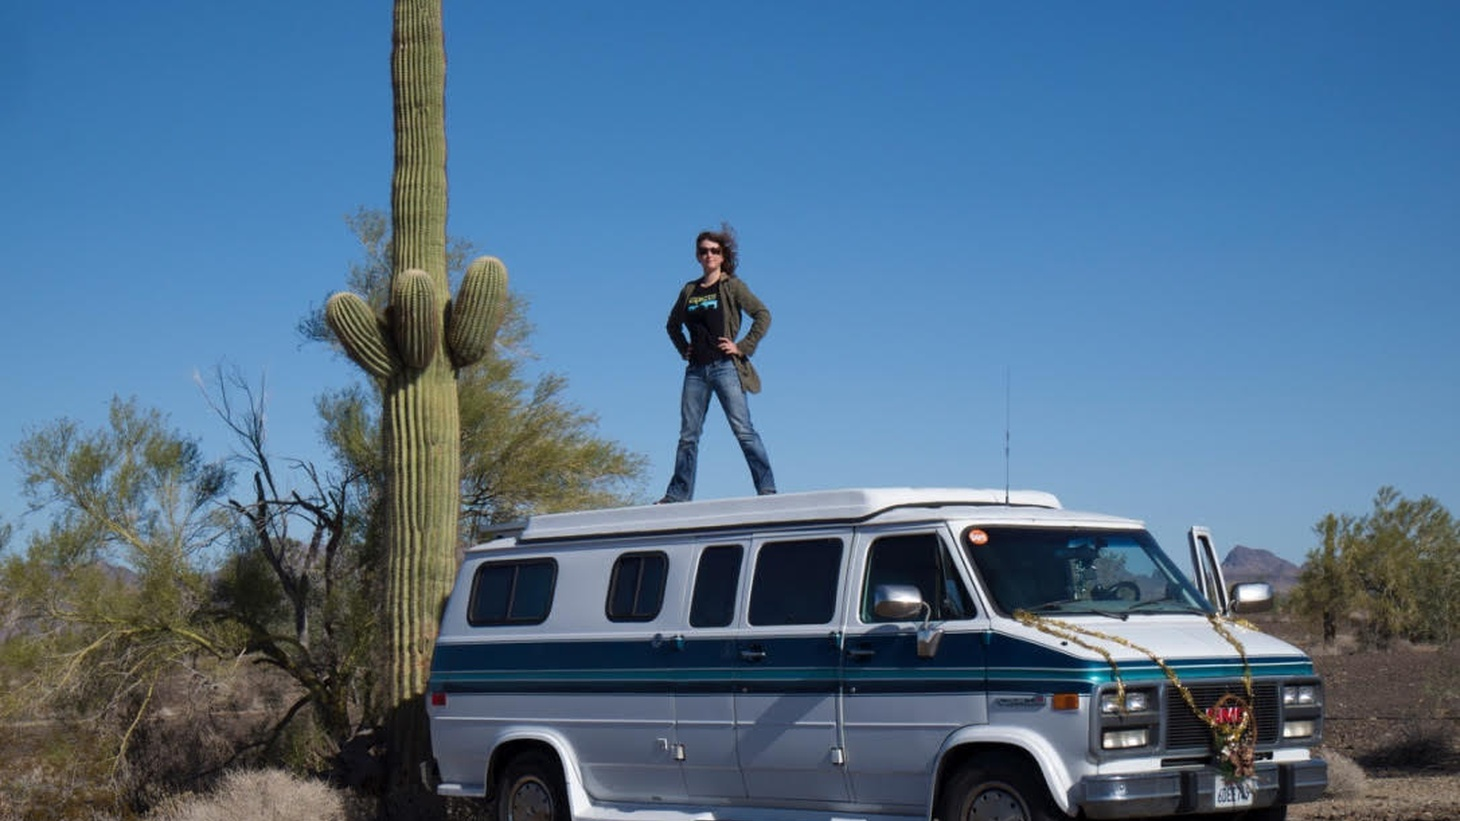 Jessica Bruder stands on top of her RV in the Sonoran Desert near Quartzsite, Arizona.